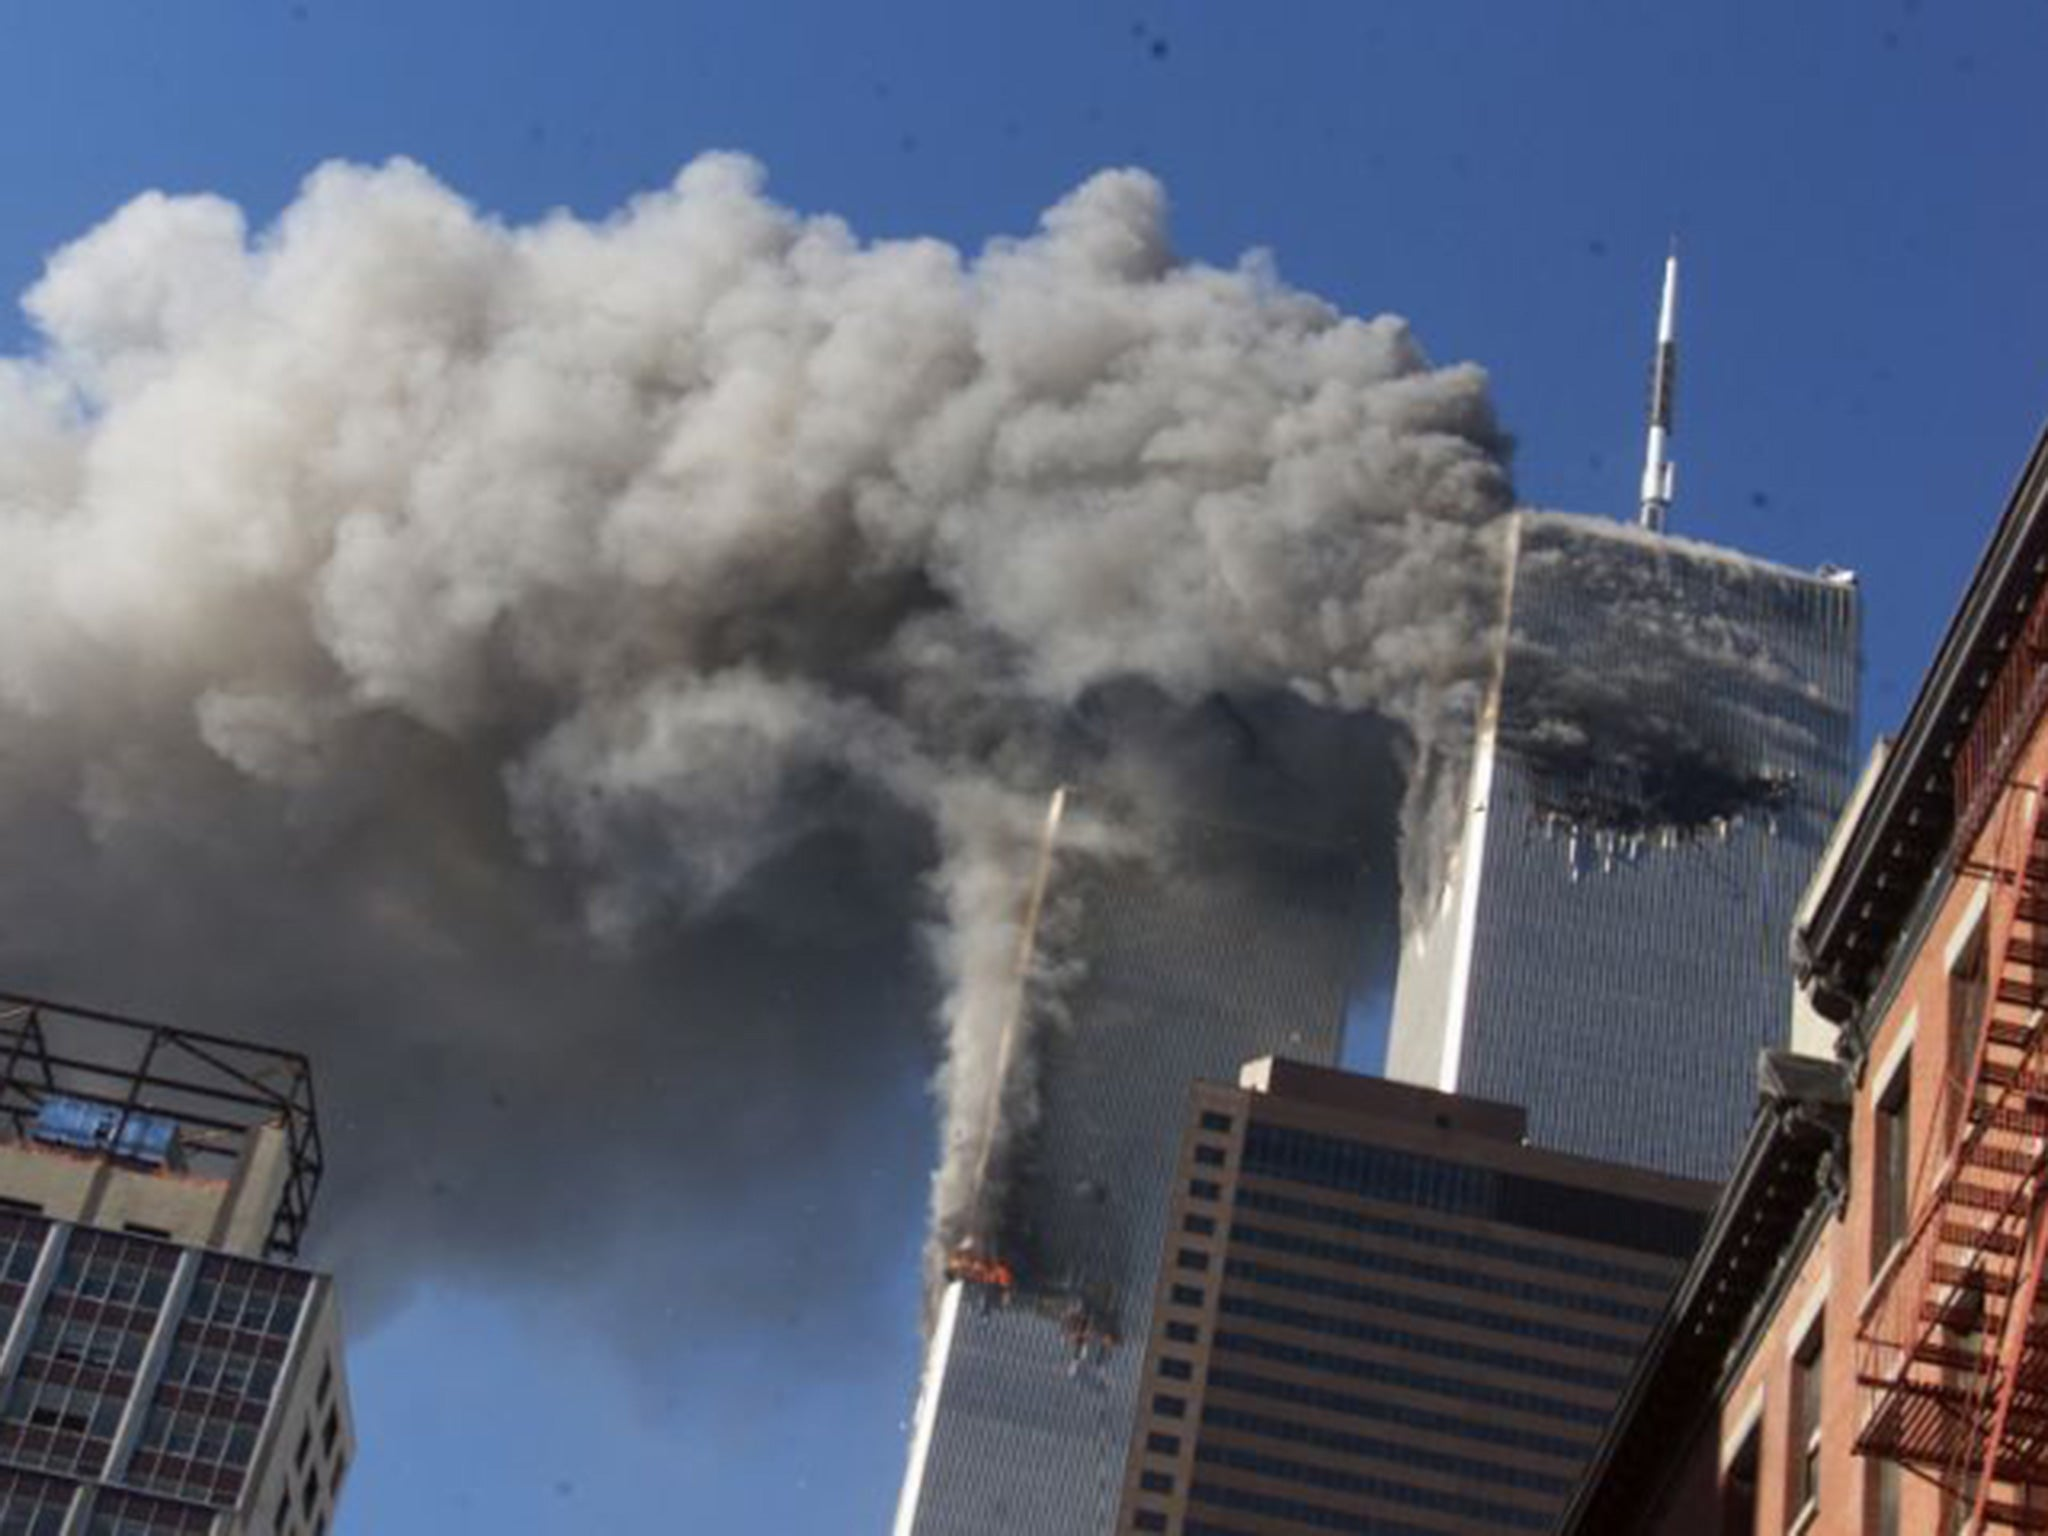 short essay on 9 11 attack What were the causes of 9/11 by peter bergen, new america foundation september 2006 five years on, everyone has a theory about the real causes of 9/11 they range from the nutty (it was the us government) to the plausible but flawed (a response to foreign occupation) to the.